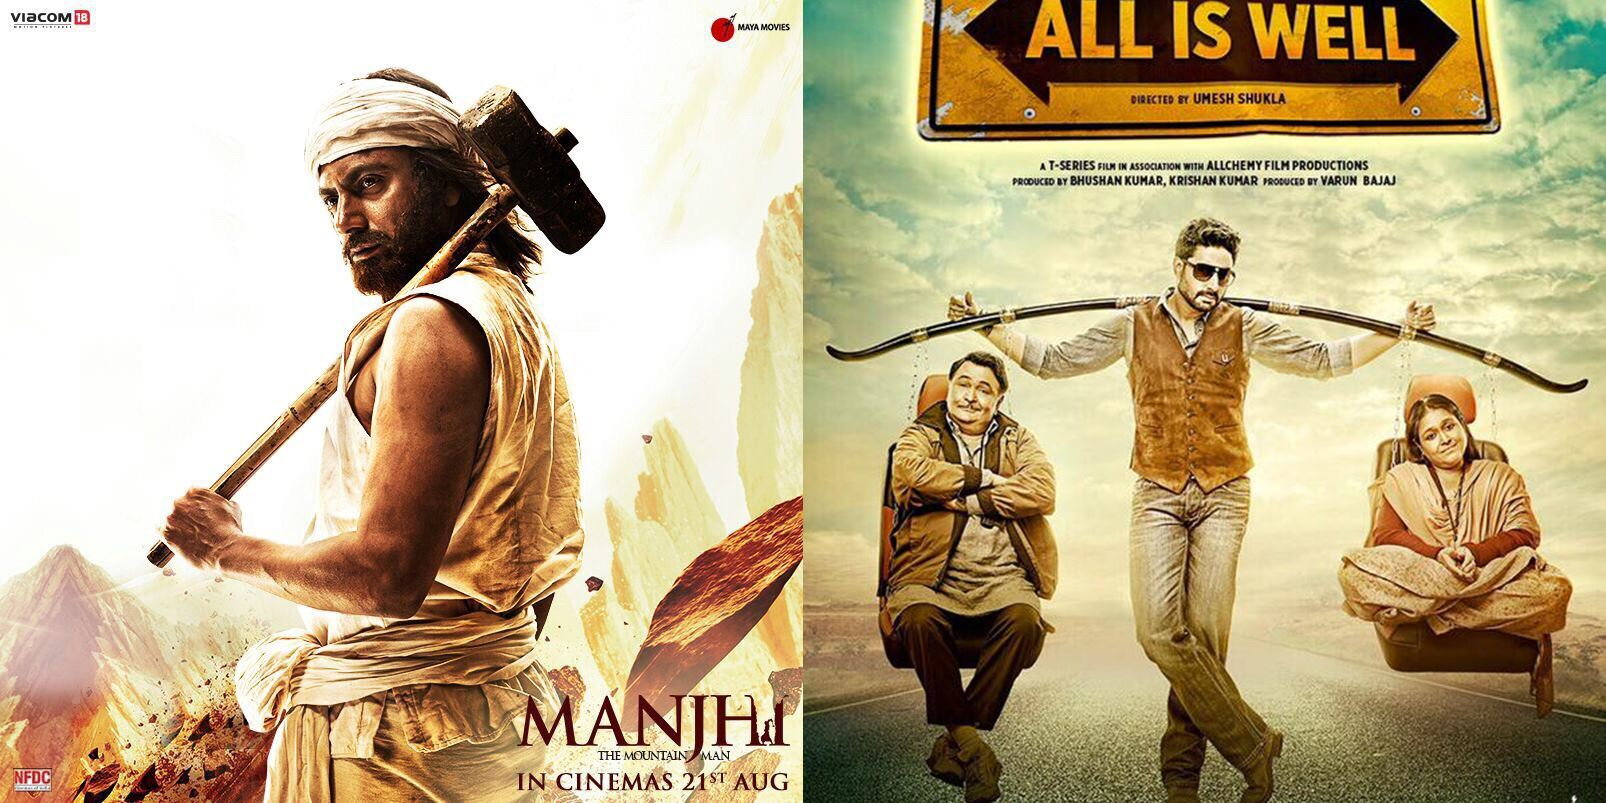 10 Biggest Bollywood Clashes in 2015-2016-Manjhi v/s All Is Well